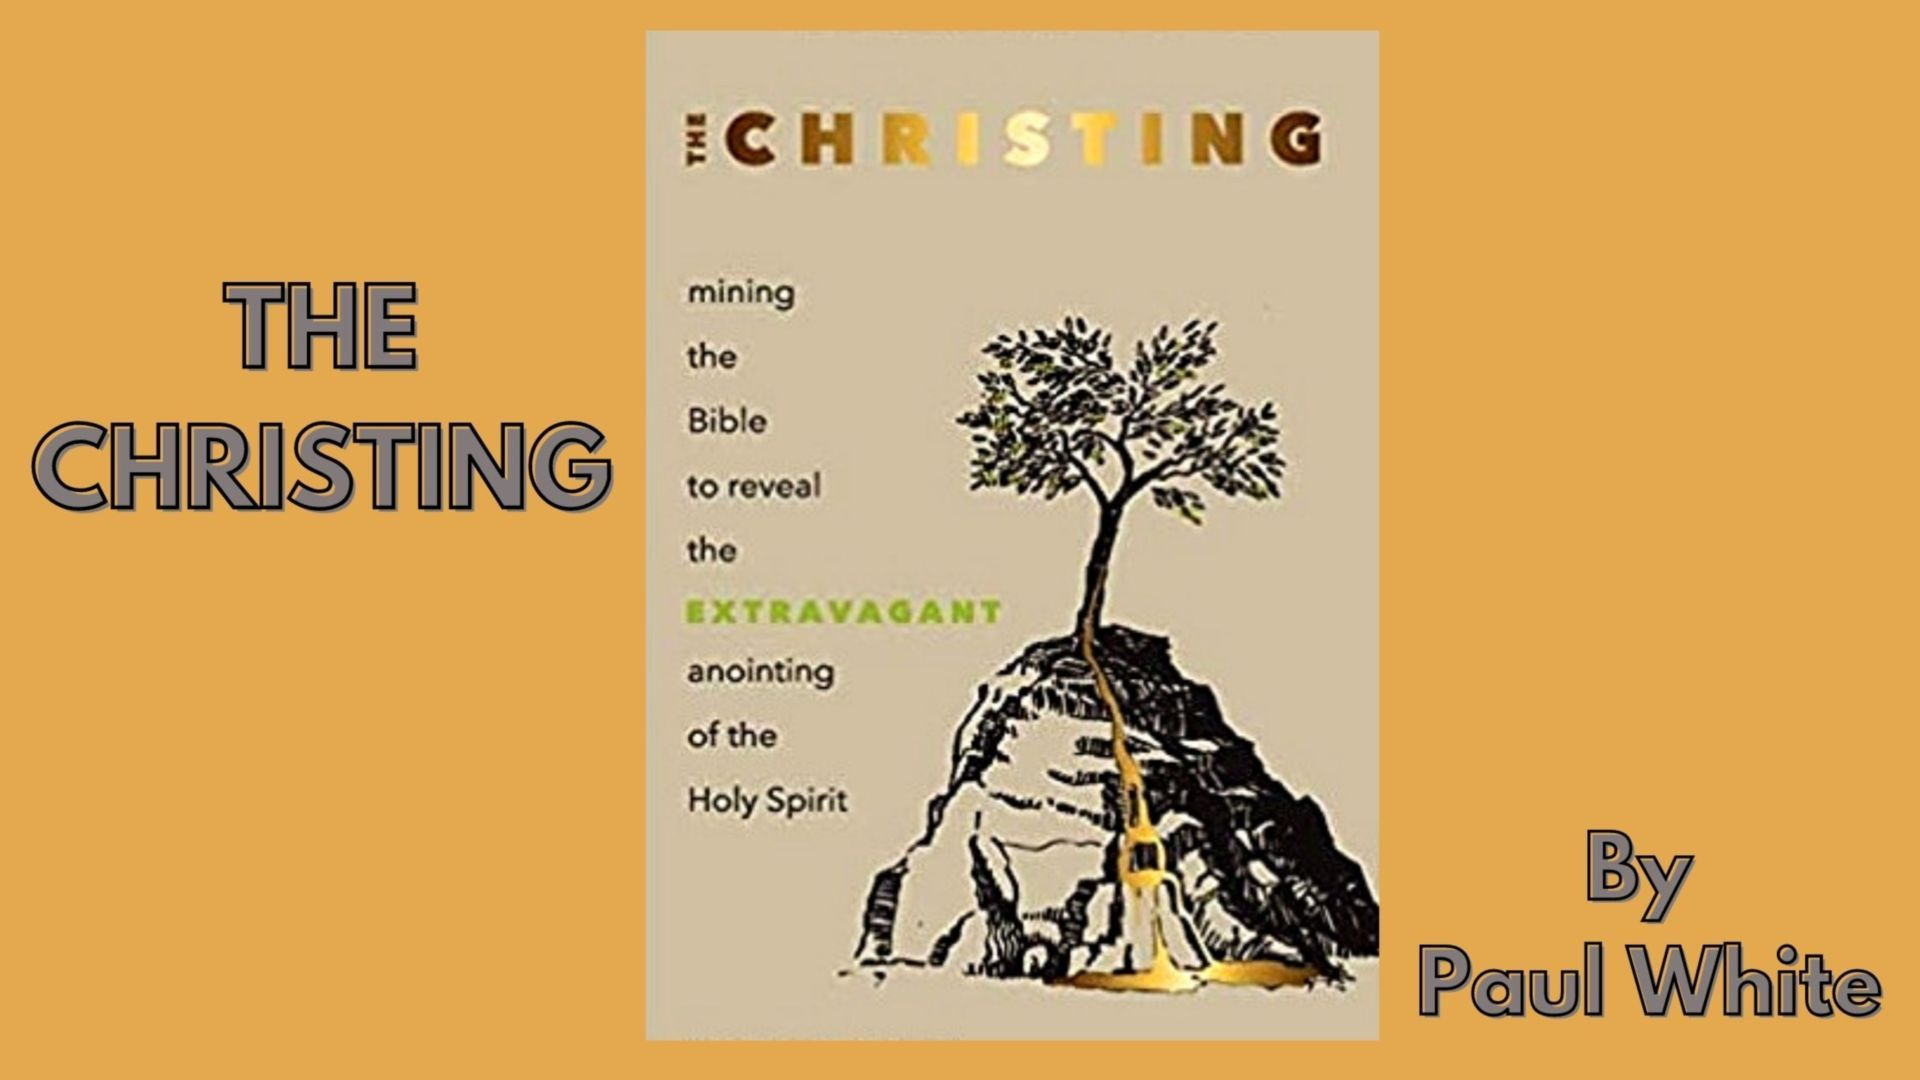 The Christing by Paul White - a new book from Authentic Media